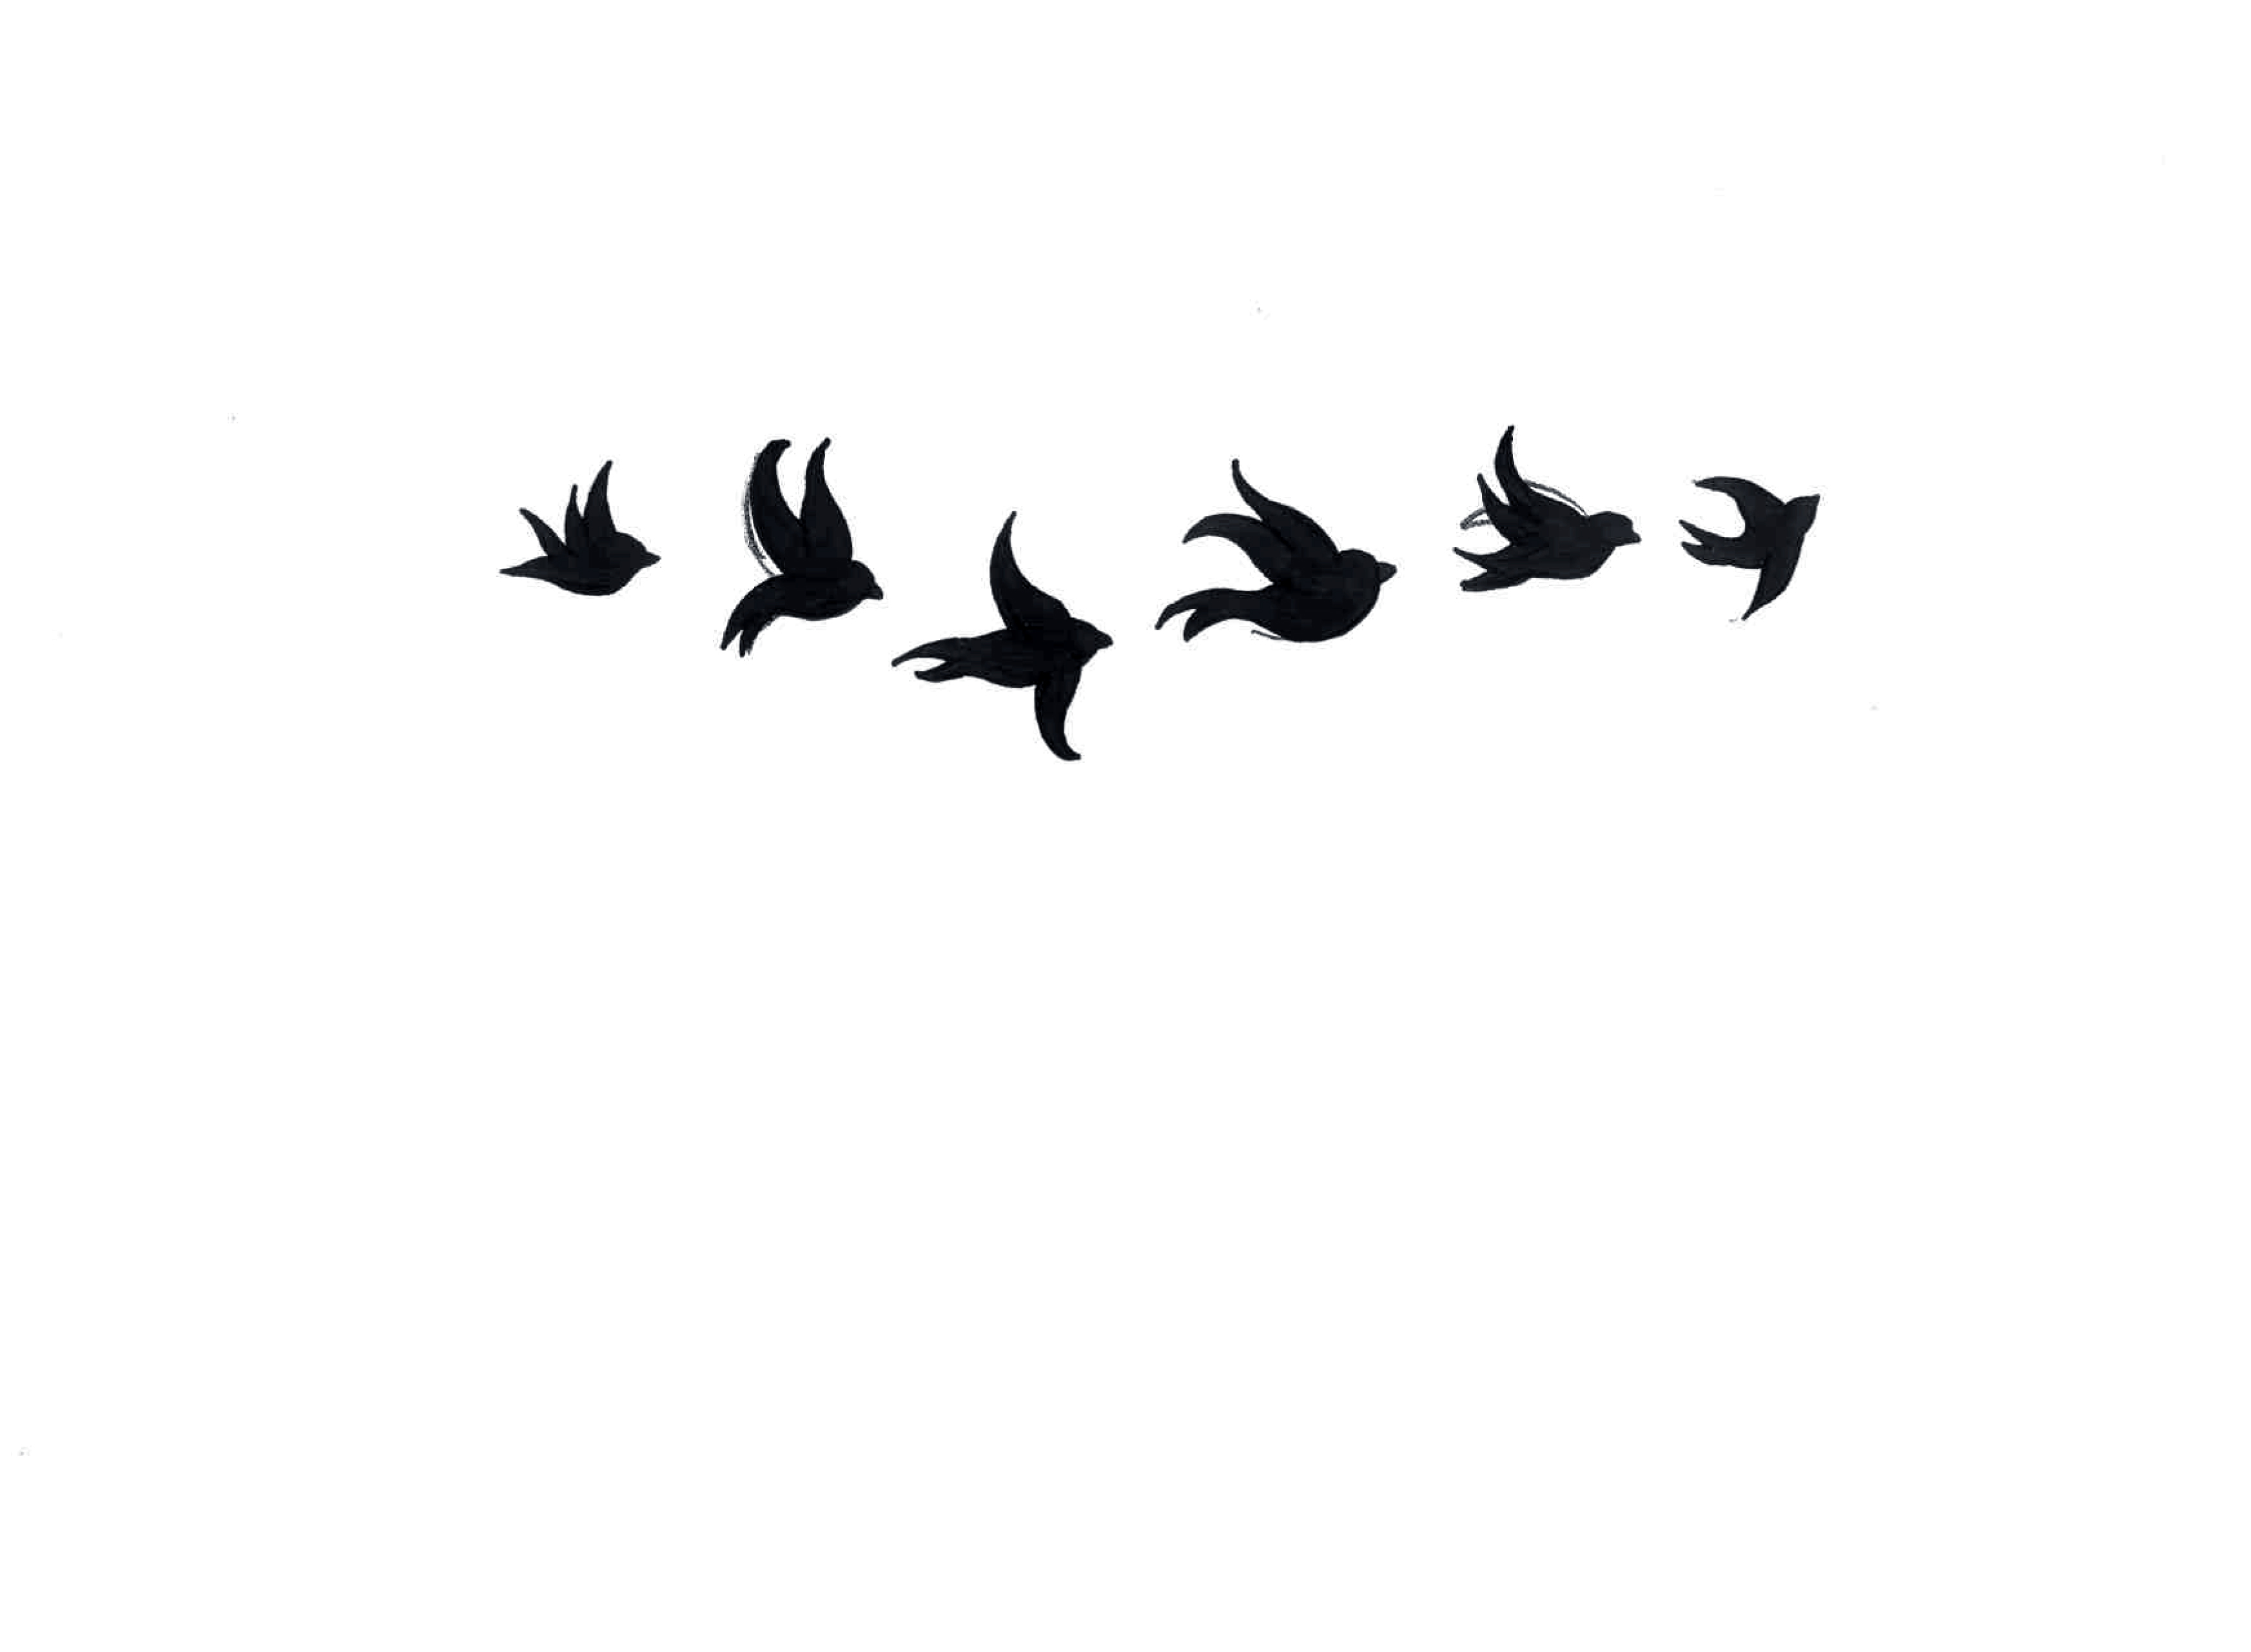 Bird Tattoos Designs Ideas And Meaning Tattoos For You Ideas And Designs